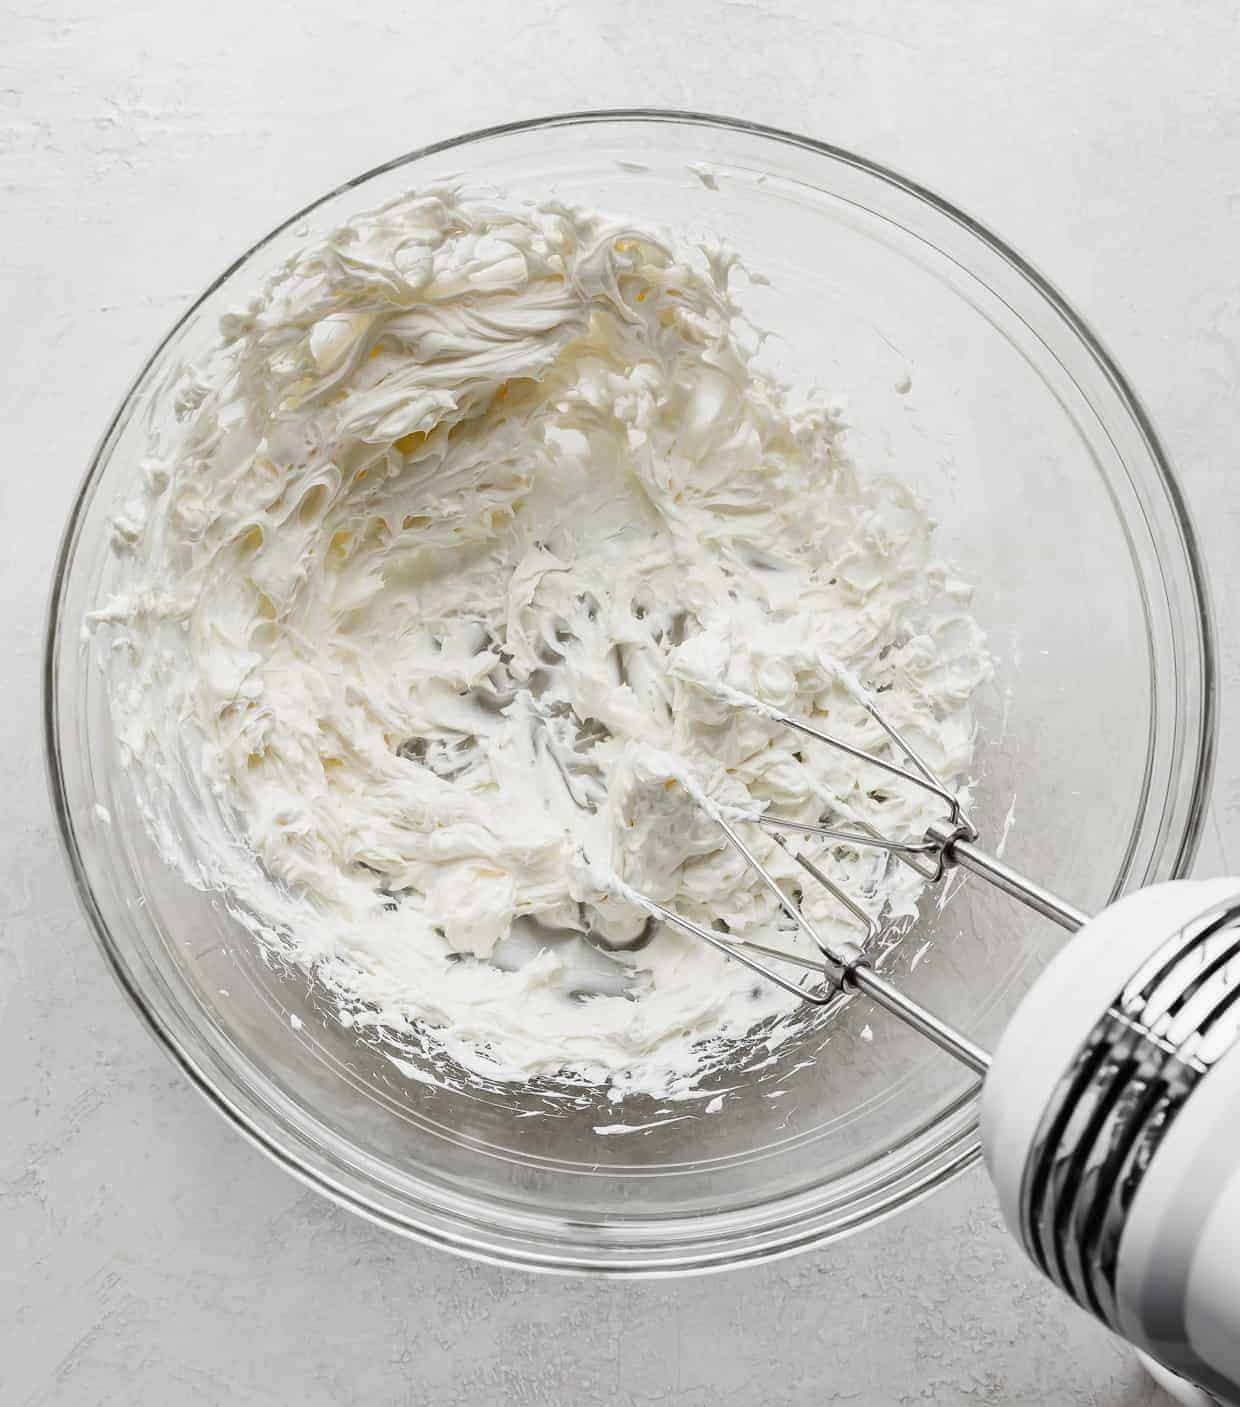 A glass bowl with cream cheese whipped in it.